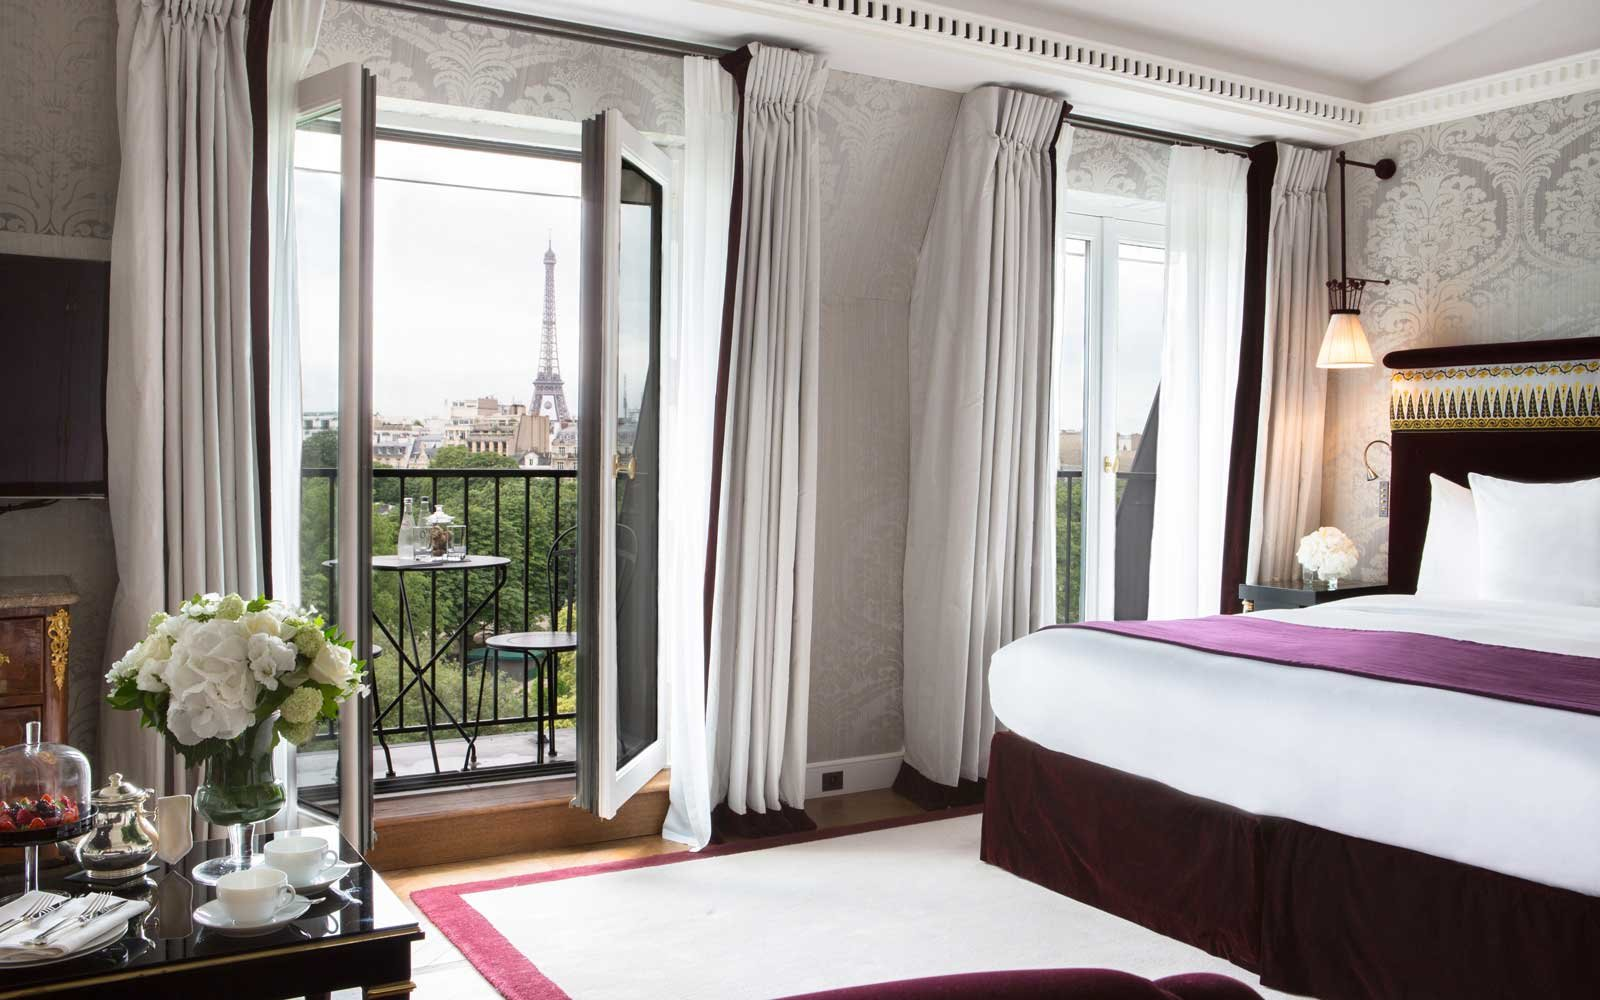 Top Romantic Hotels: La Reserve, Paris, France